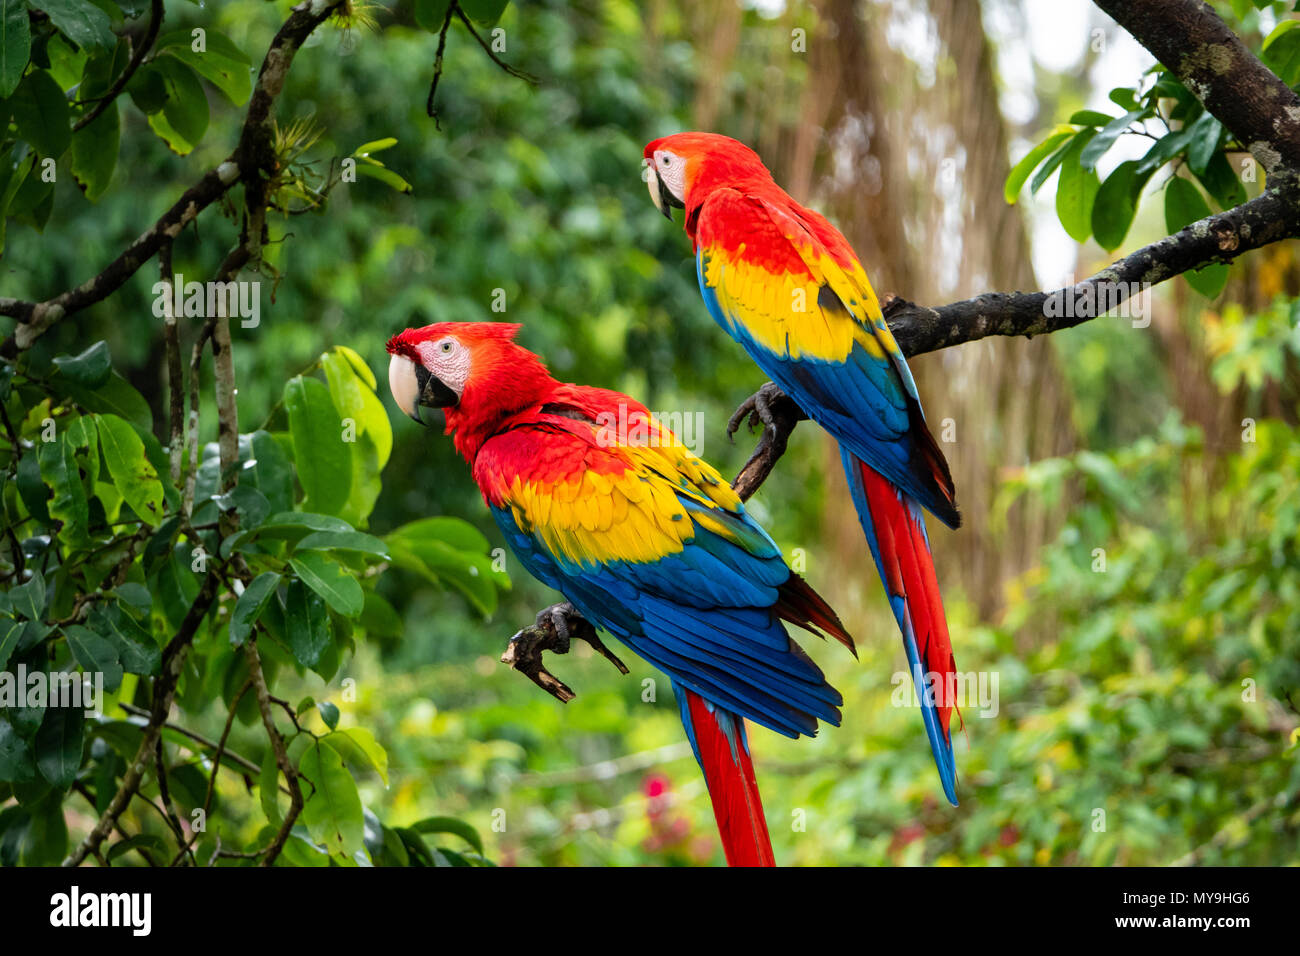 Pair of Scarlet Macaws (Ara macao cyanopterus) in Costa Rica - Stock Image